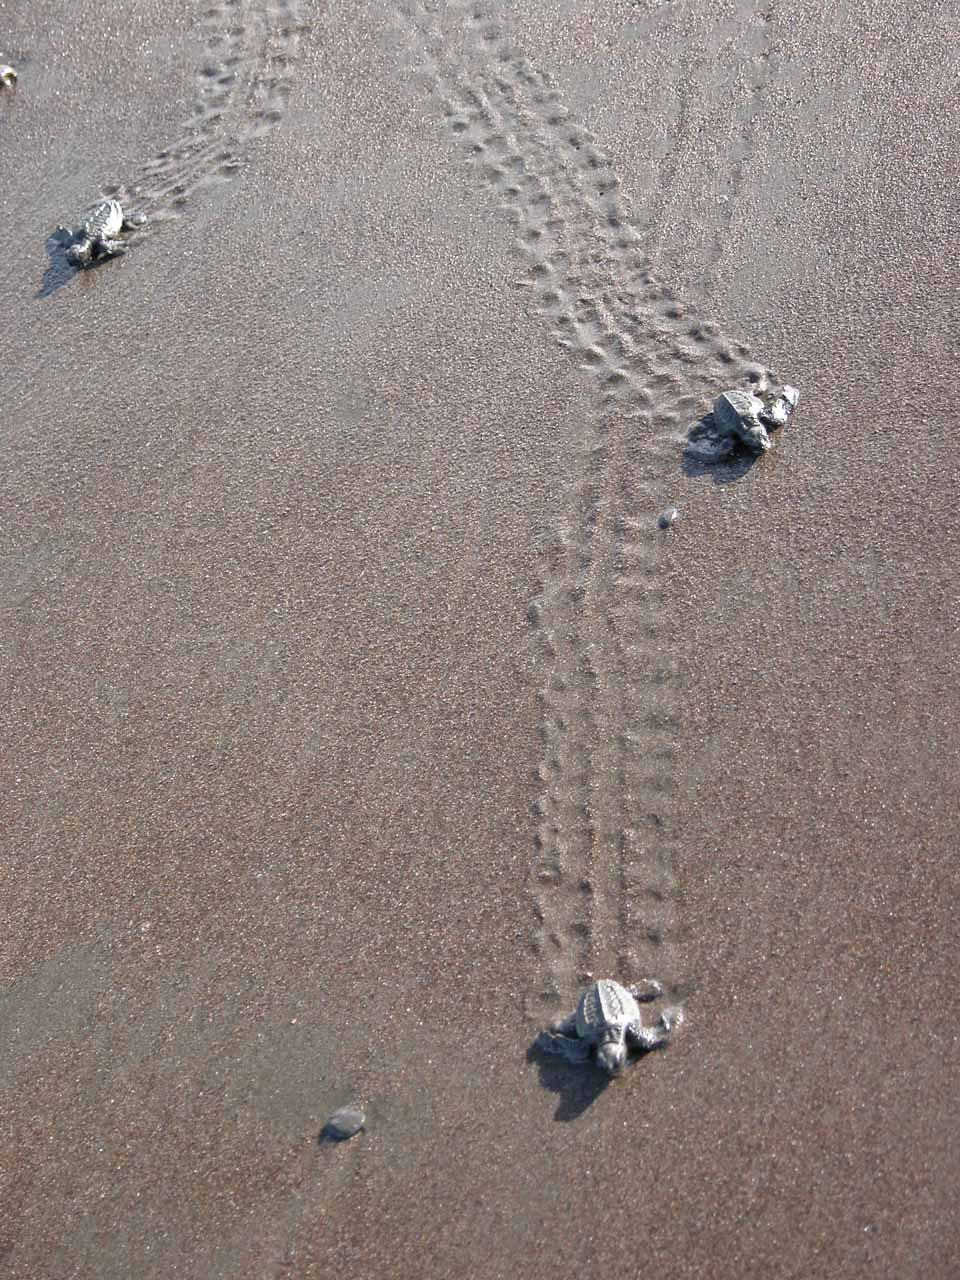 Olive Ridley Newborns Heading To The Sea